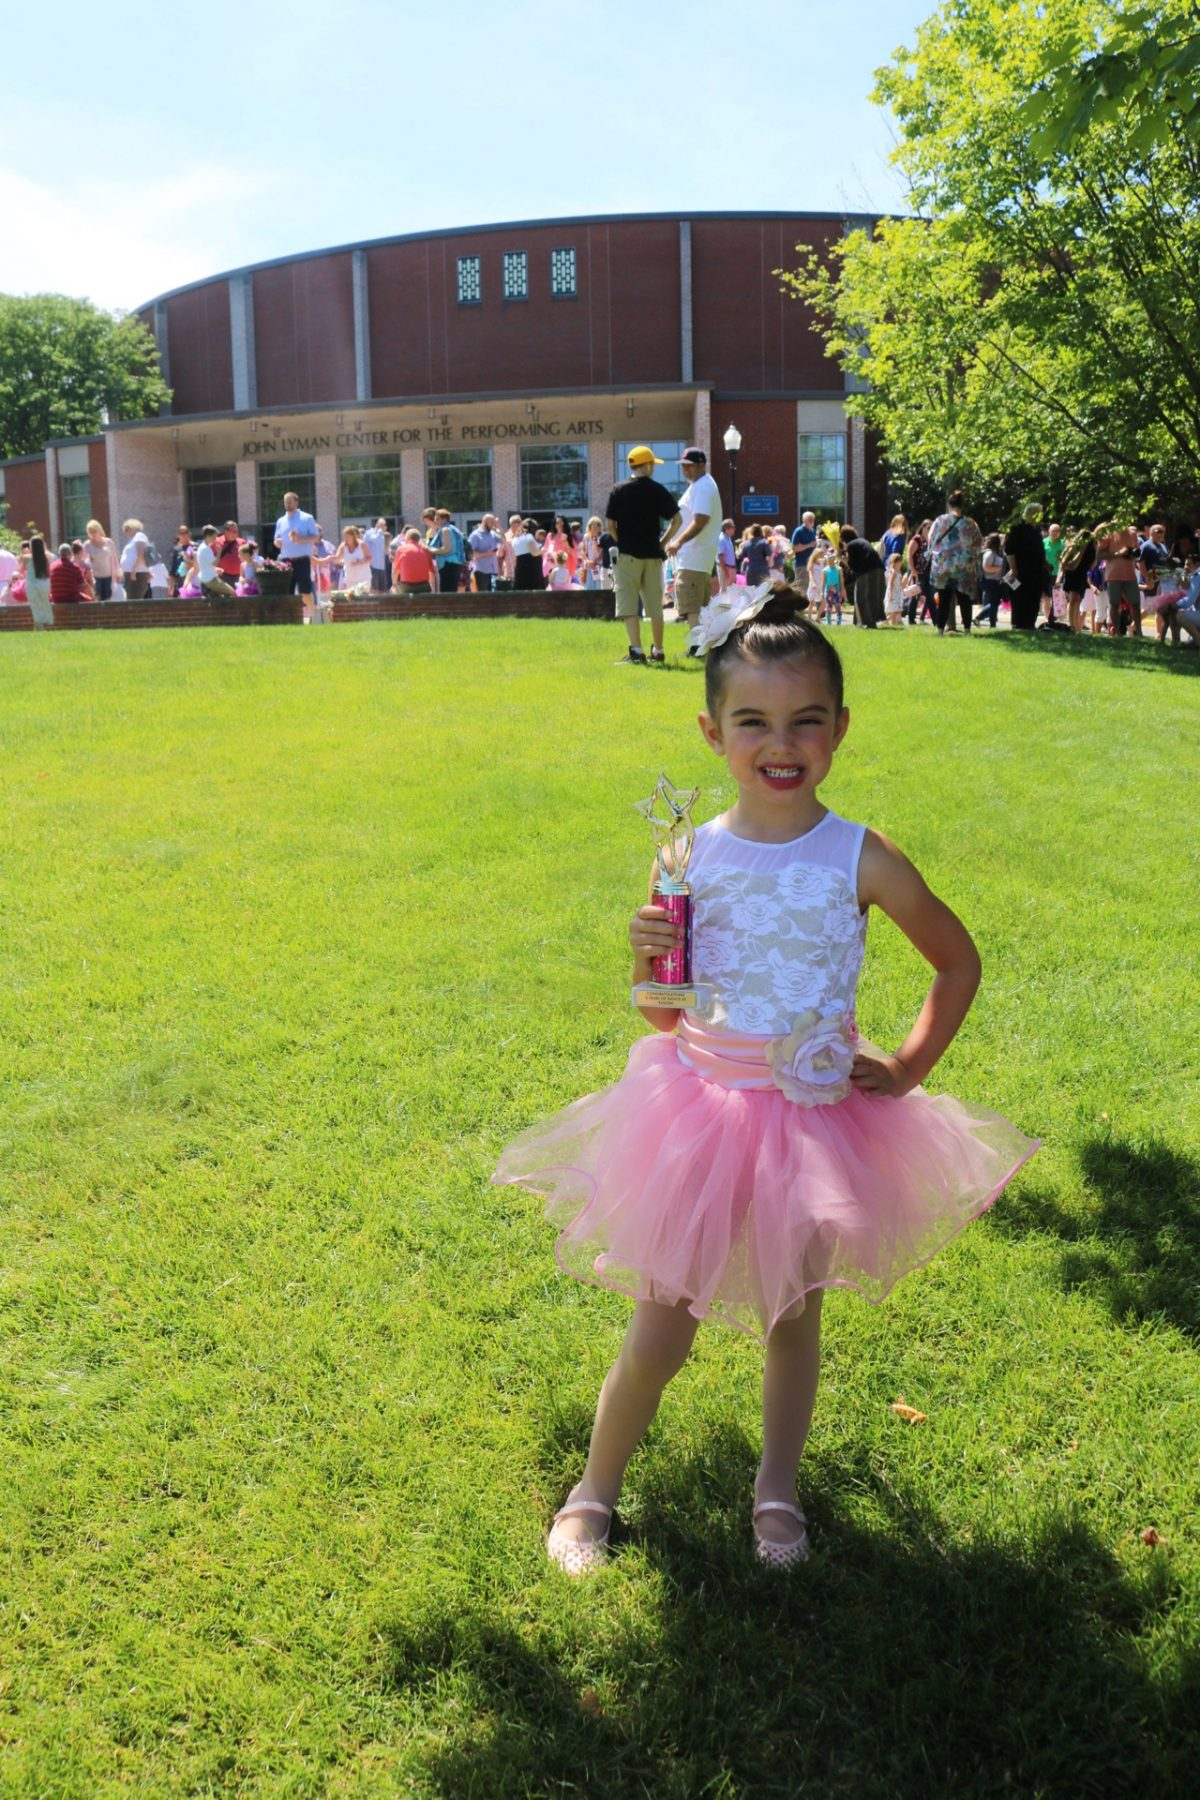 Ballerina after her dance recital holding trophy